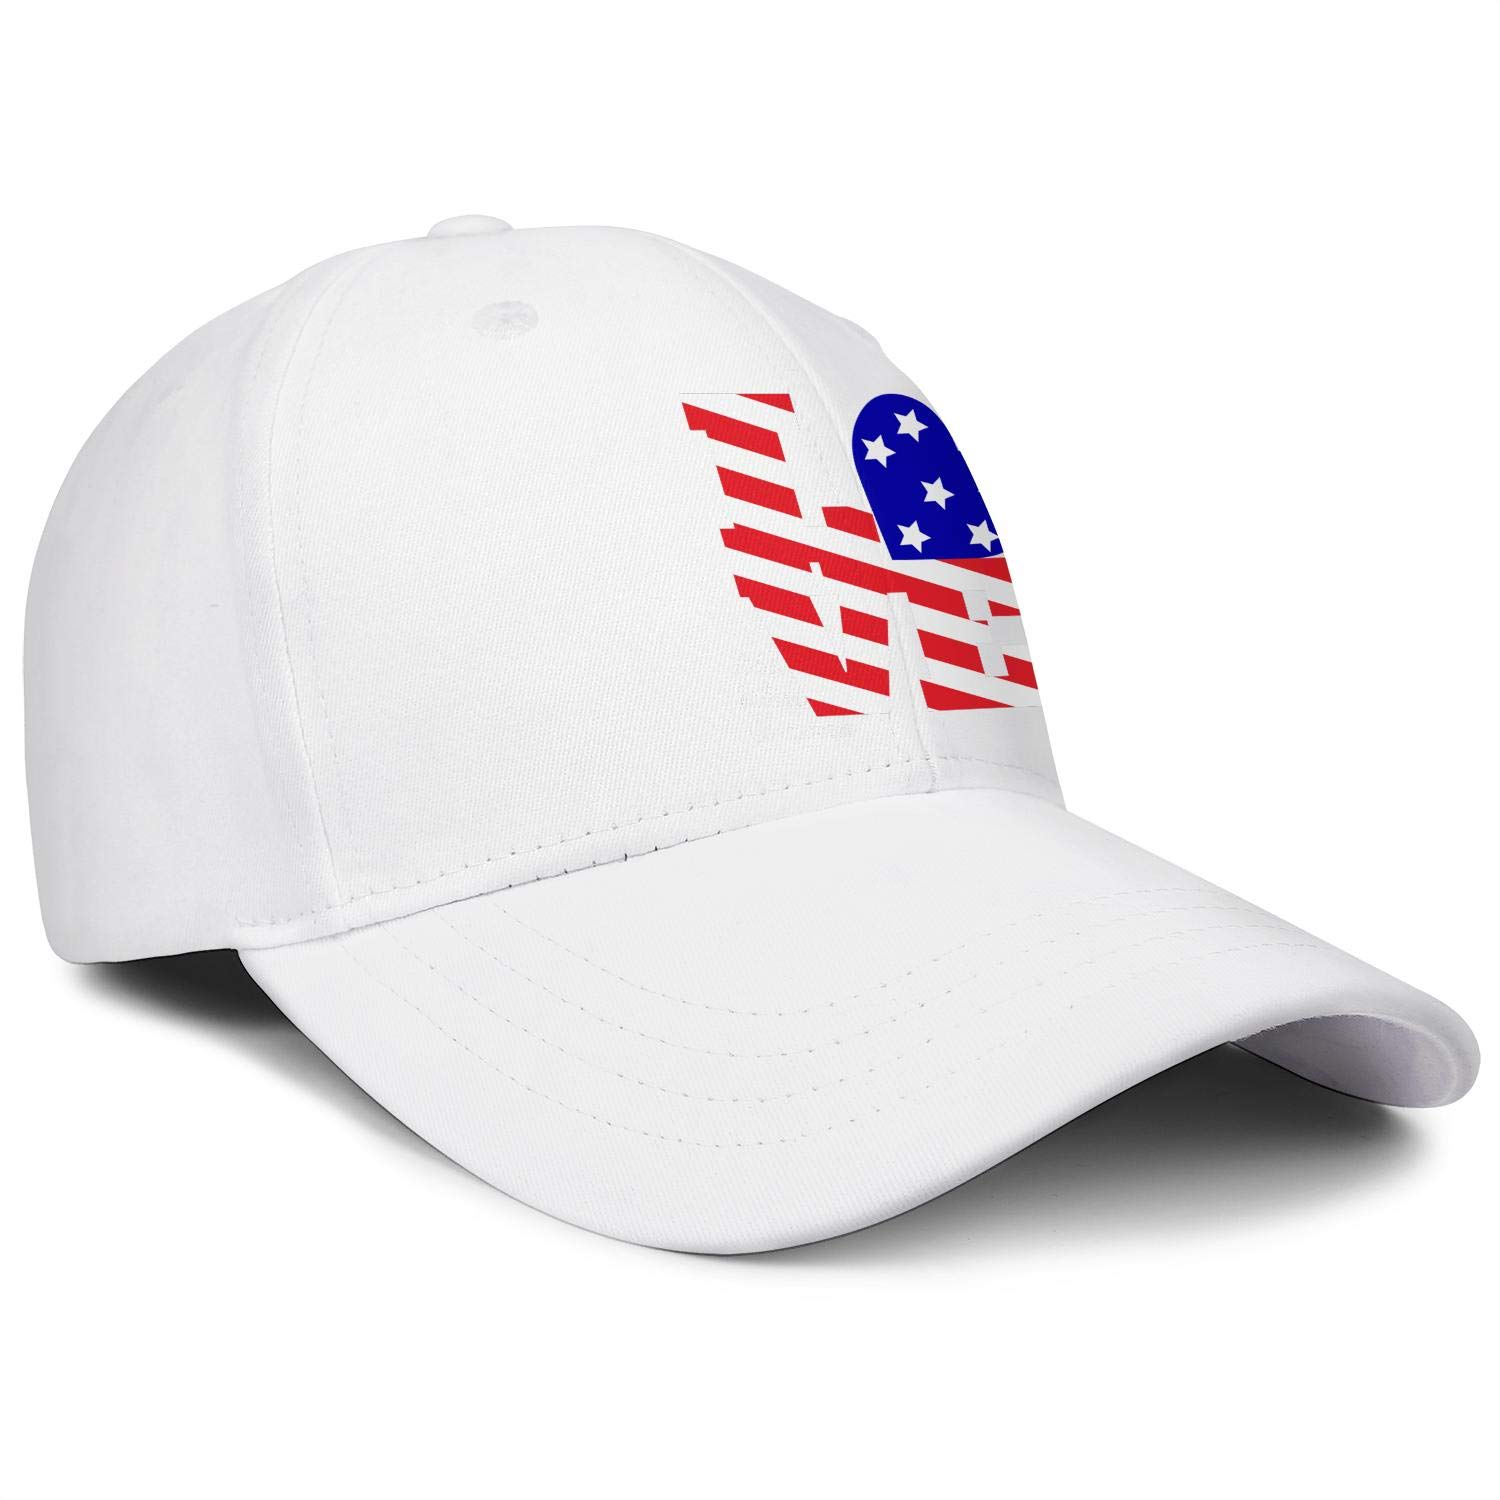 4th of July American Flag Love Heart Unisex Baseball One Size Low Profile Structured Snapback Cap